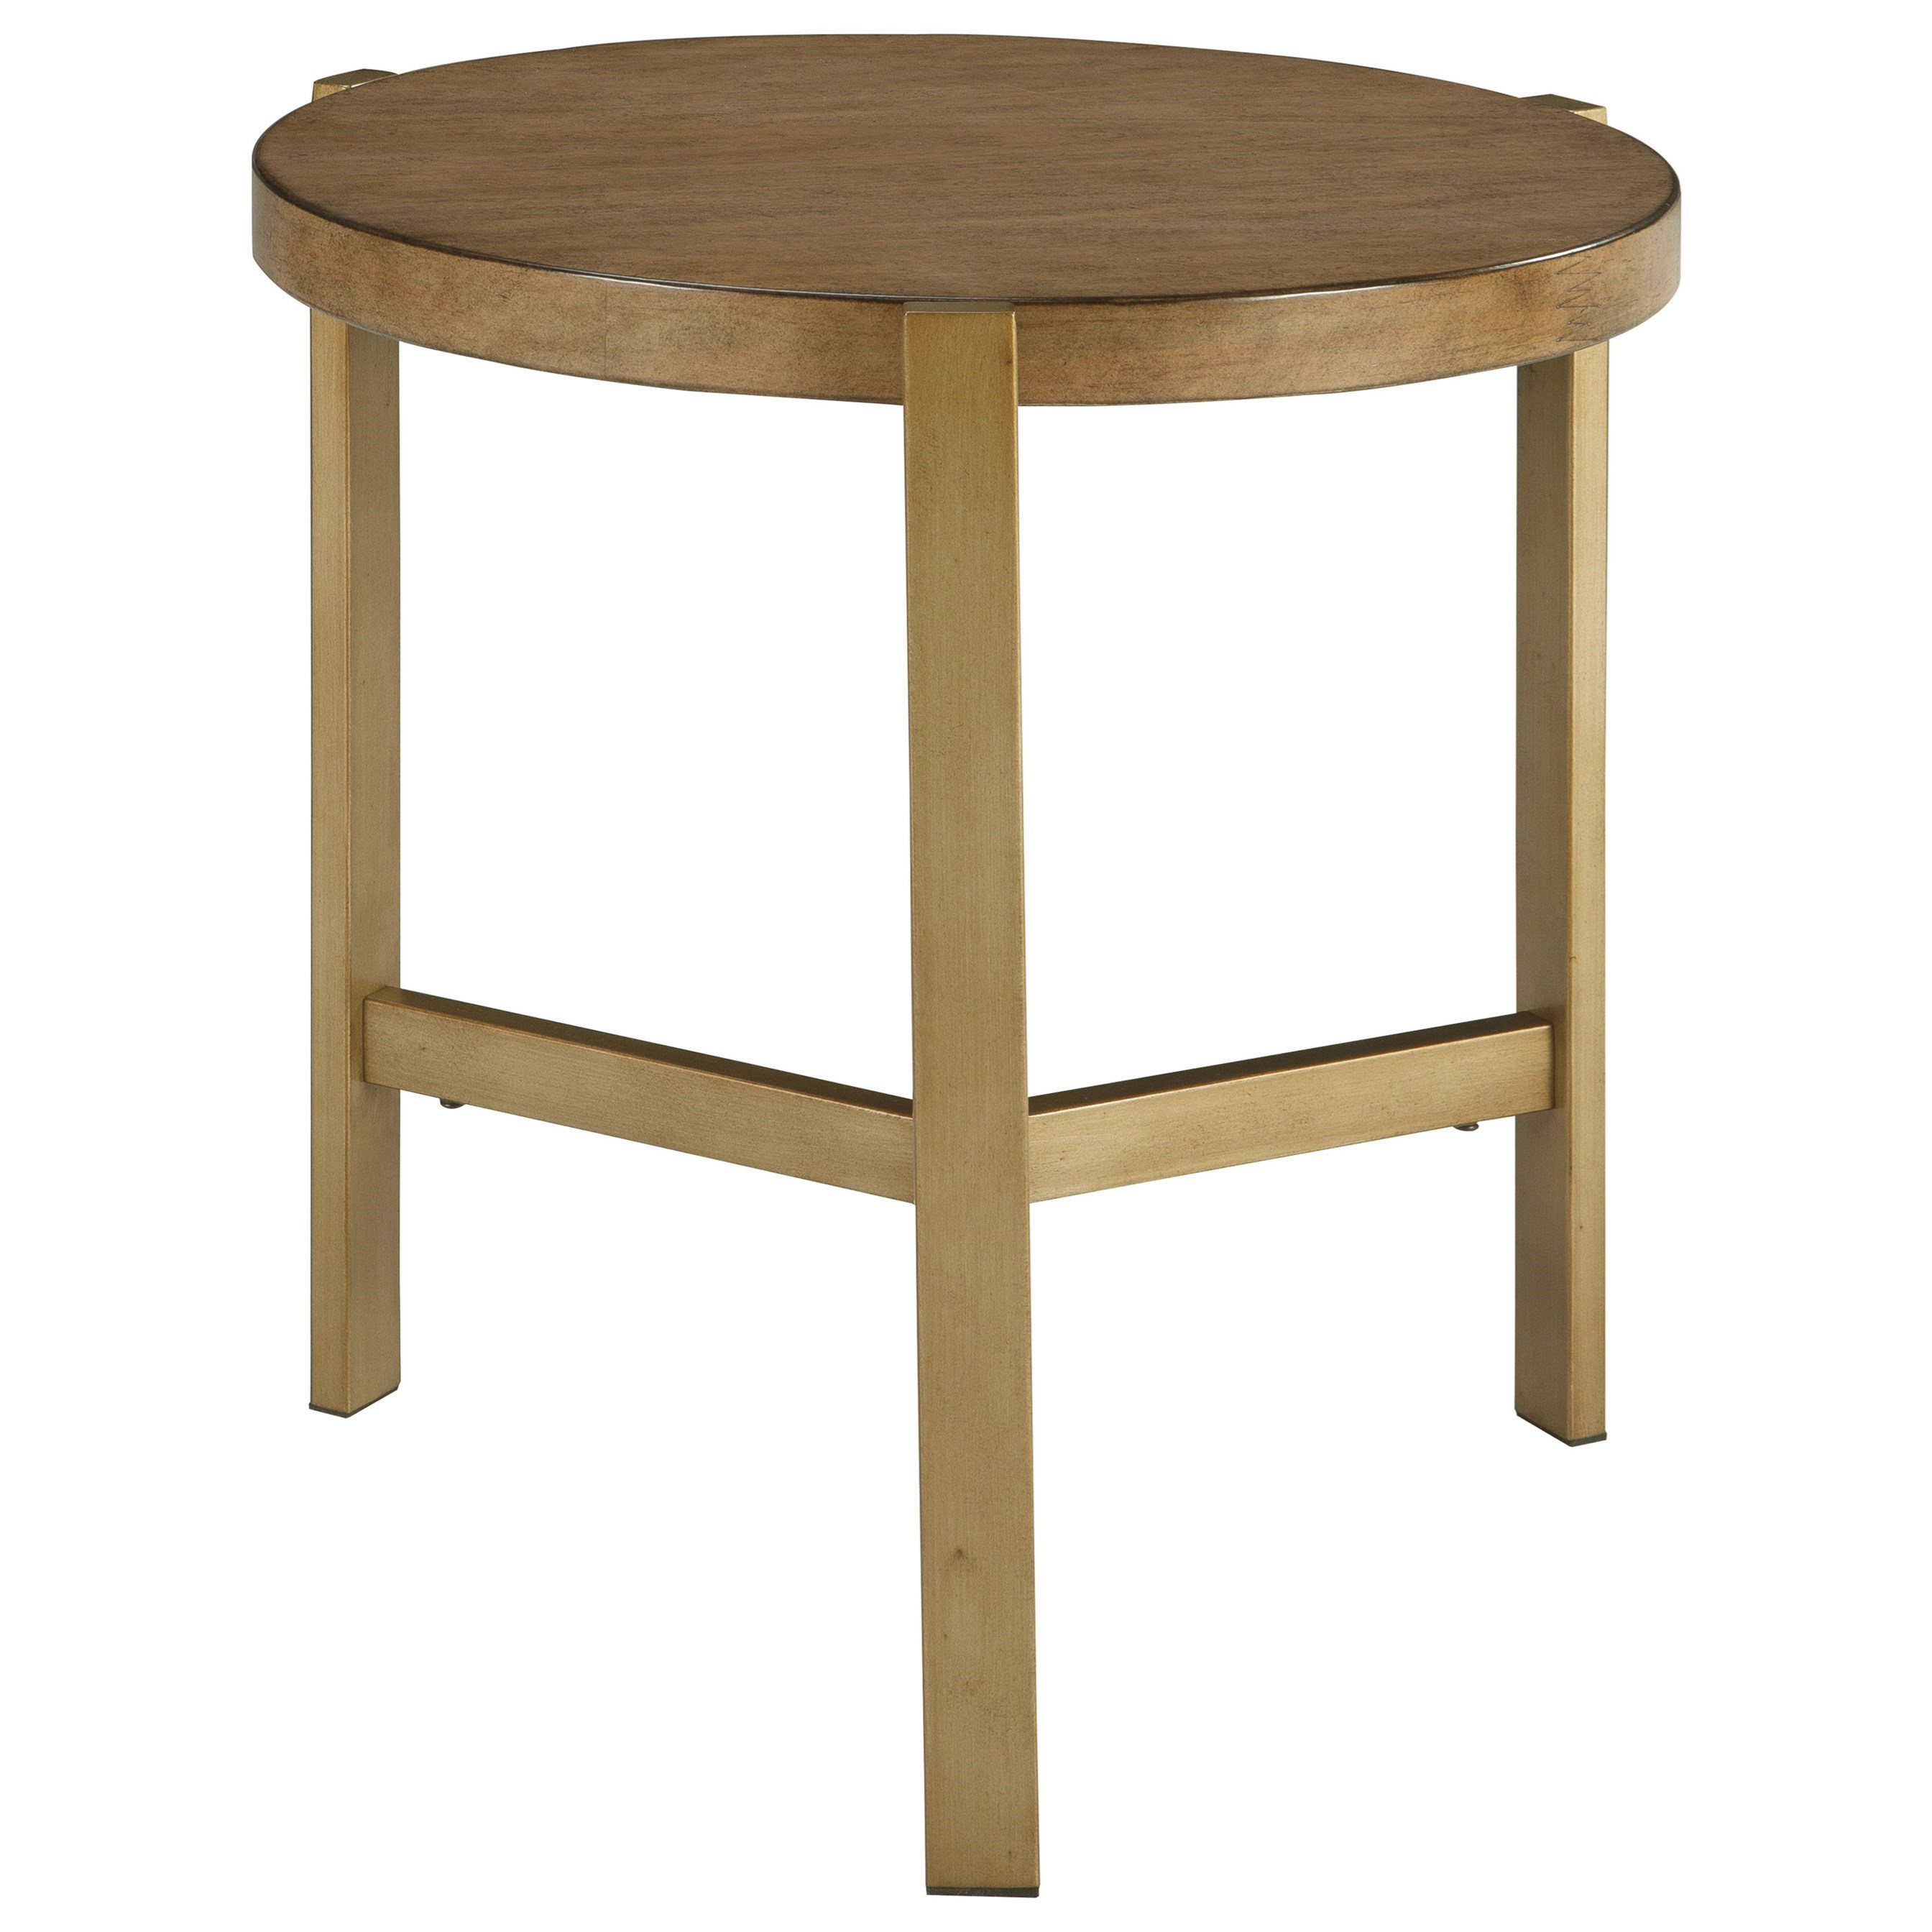 Signature Design by Ashley Franston Round End Table - Item Number: T346-6